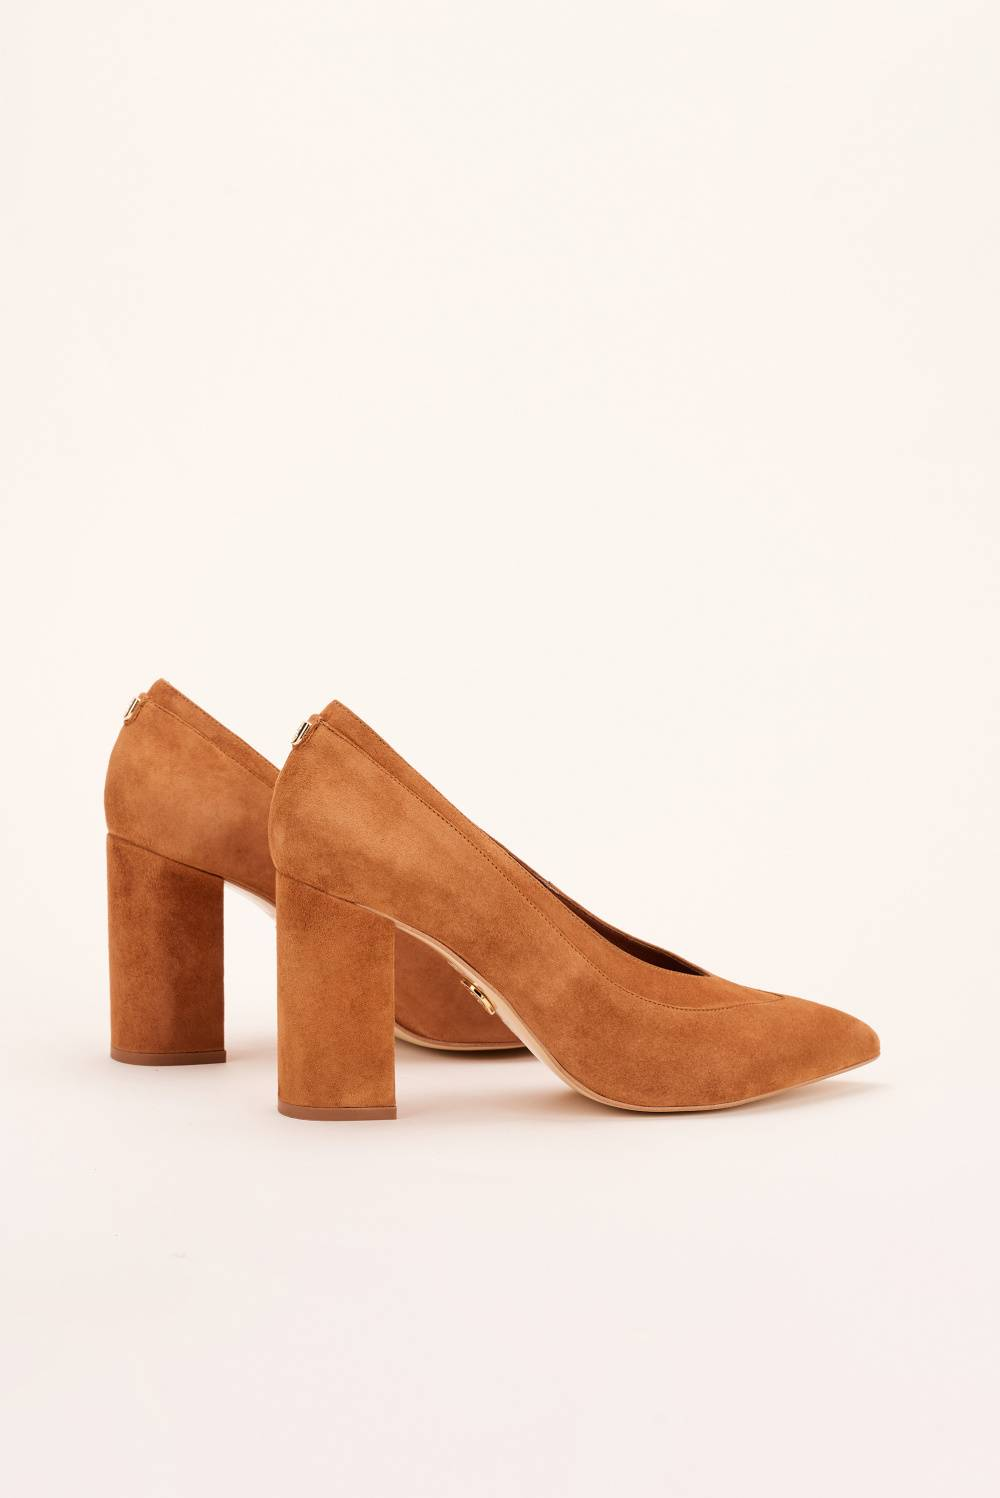 High heeled suede shoes - Salsa